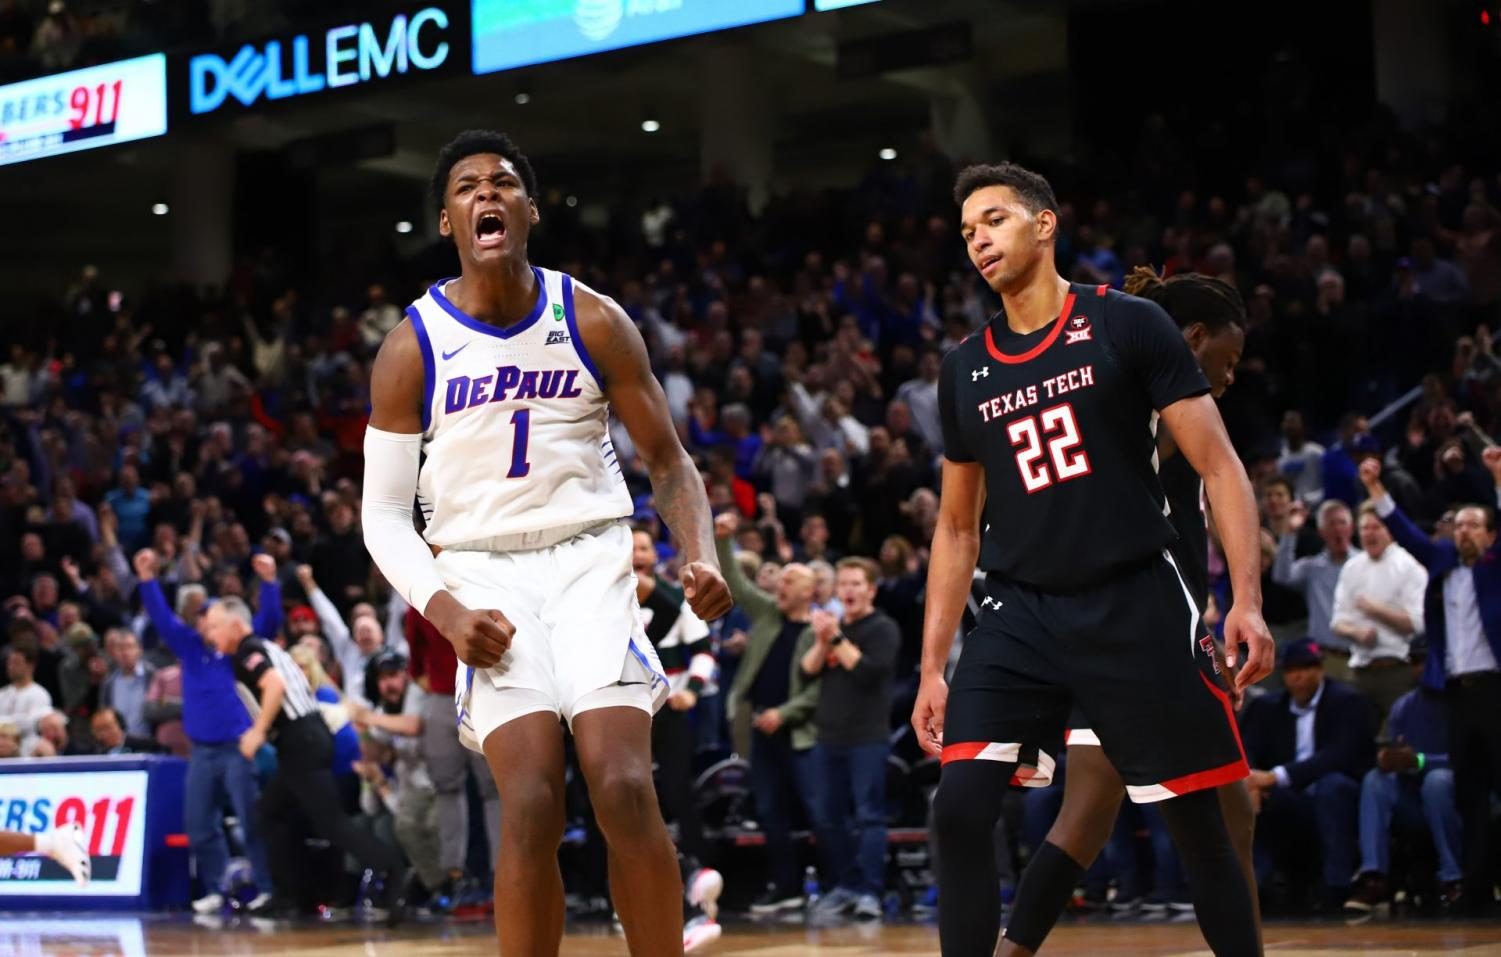 DePaul freshman Romeo Weems celebrates after a dunk in overtime. The Blue Demons won the game 65-60 against Texas Tech.